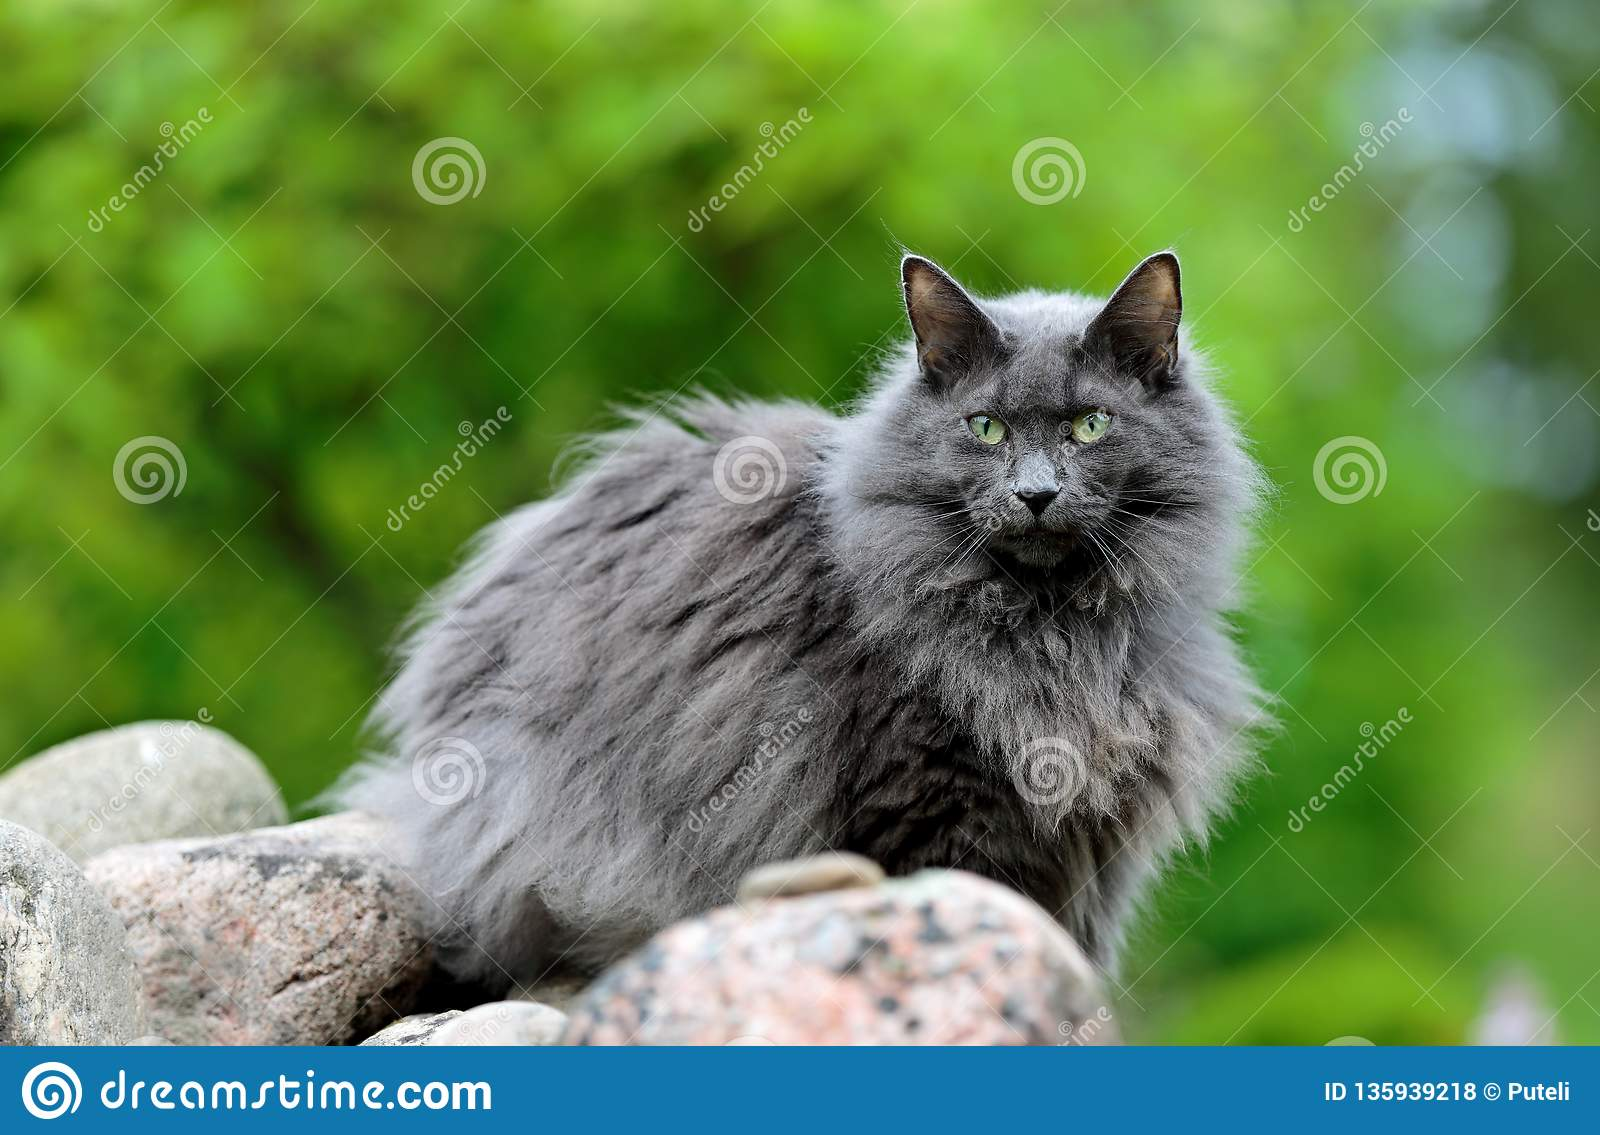 A Norwegian Forest Cat Standing On A Stone Stock Photo Image Of Portrait Pretty 135939218